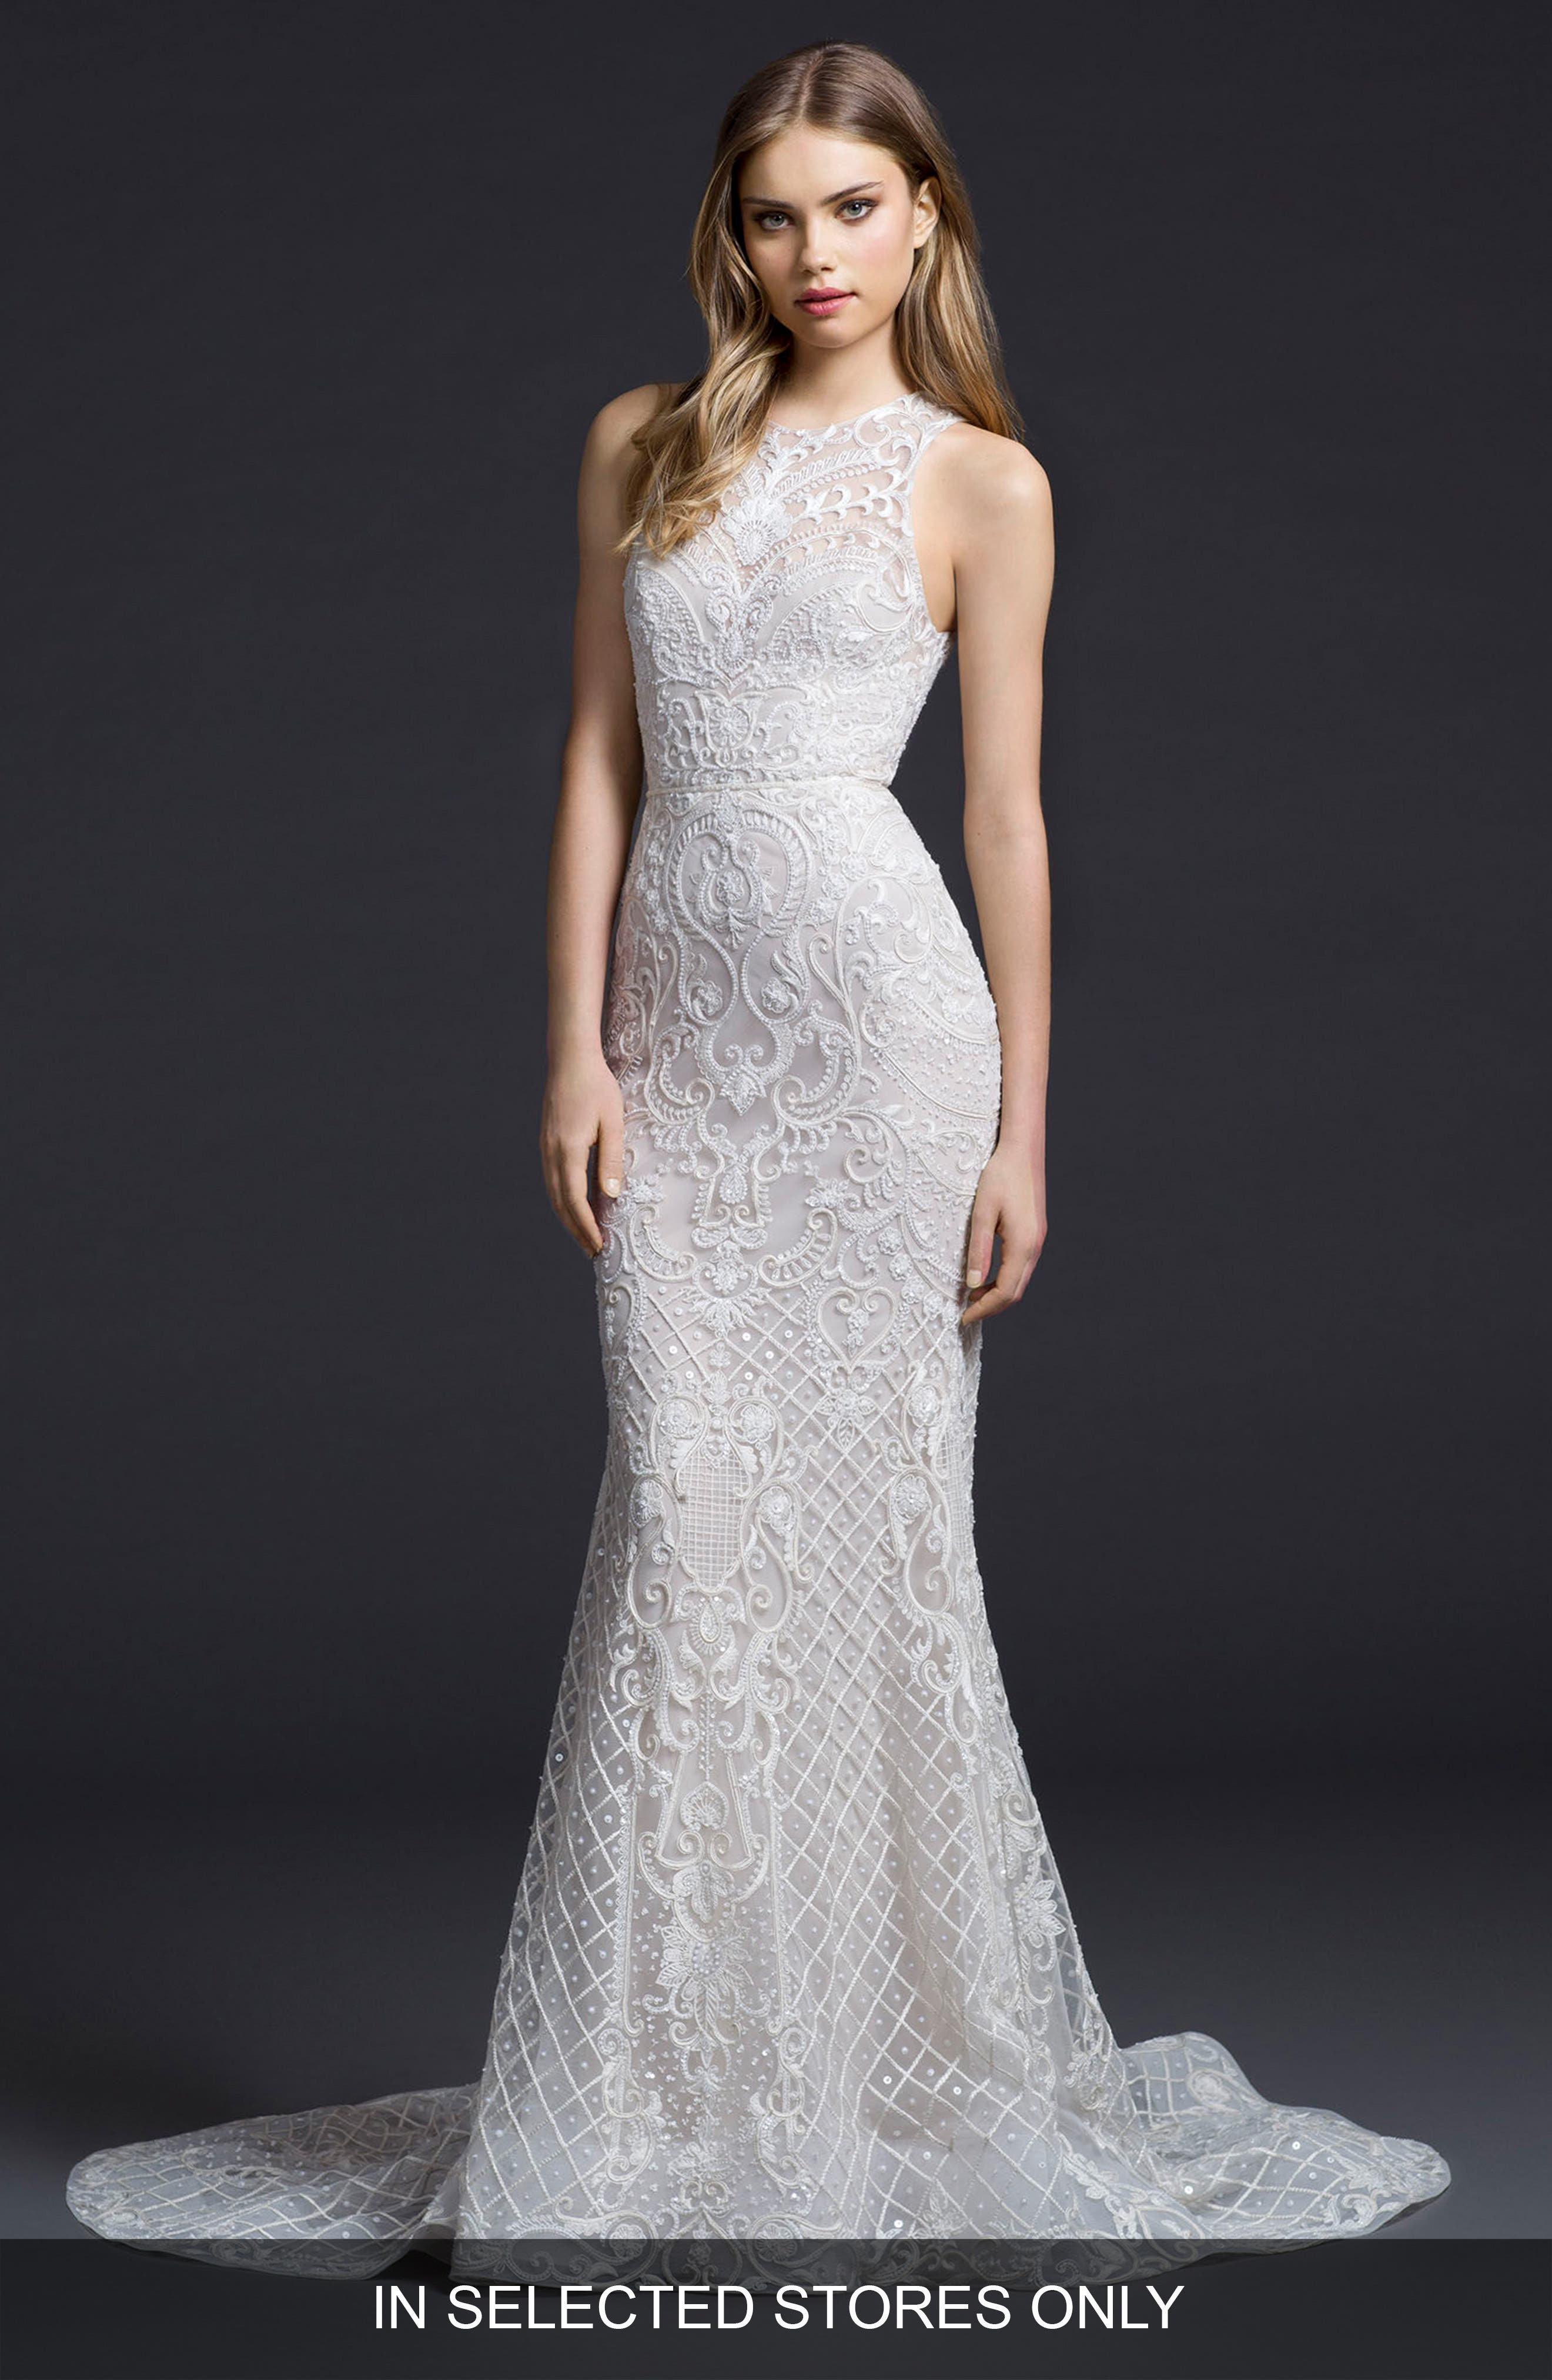 Embroidered Chiffon Trumpet Gown,                             Main thumbnail 1, color,                             Ivory/ Cashmere